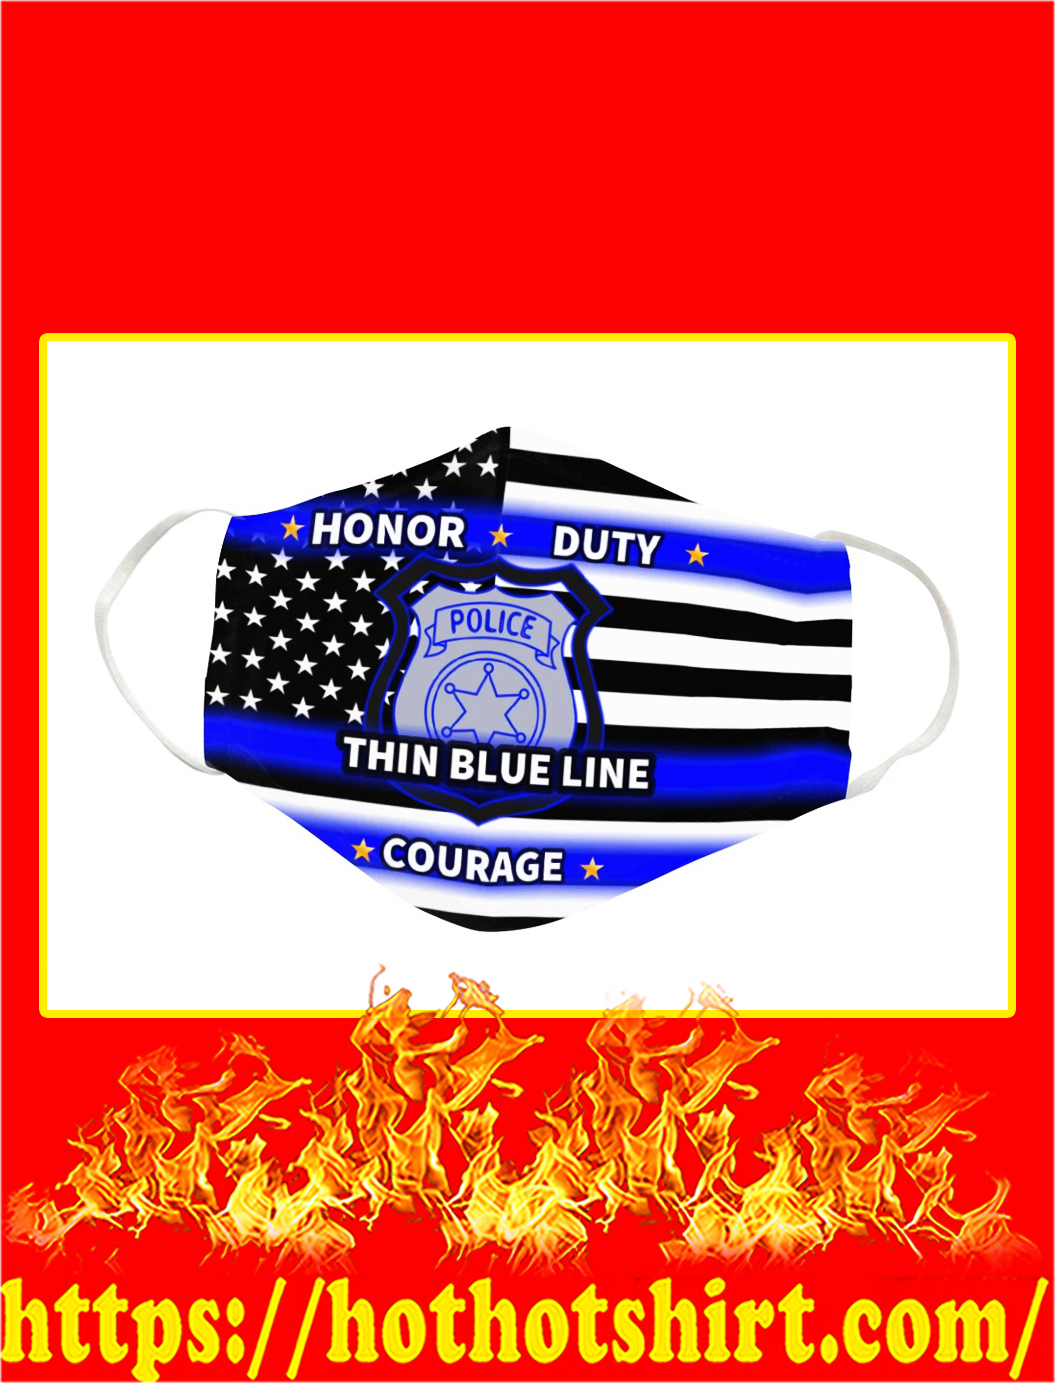 Police thin blue line honor duty courage face mask